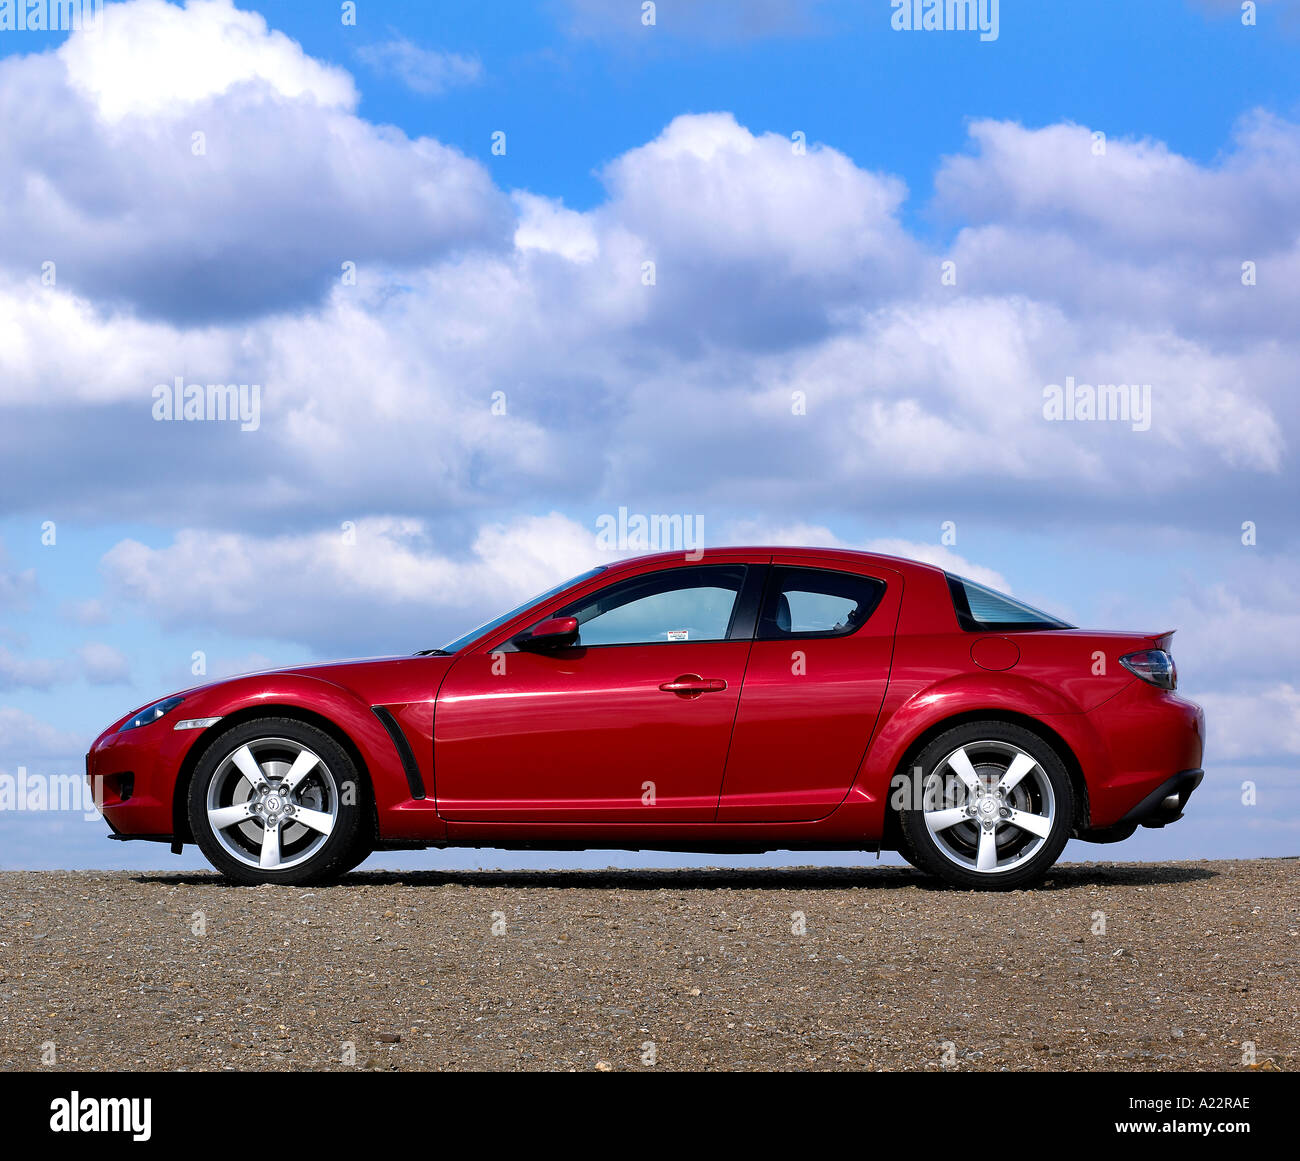 2004 mazda rx8 stock photo royalty free image 3391405 alamy. Black Bedroom Furniture Sets. Home Design Ideas